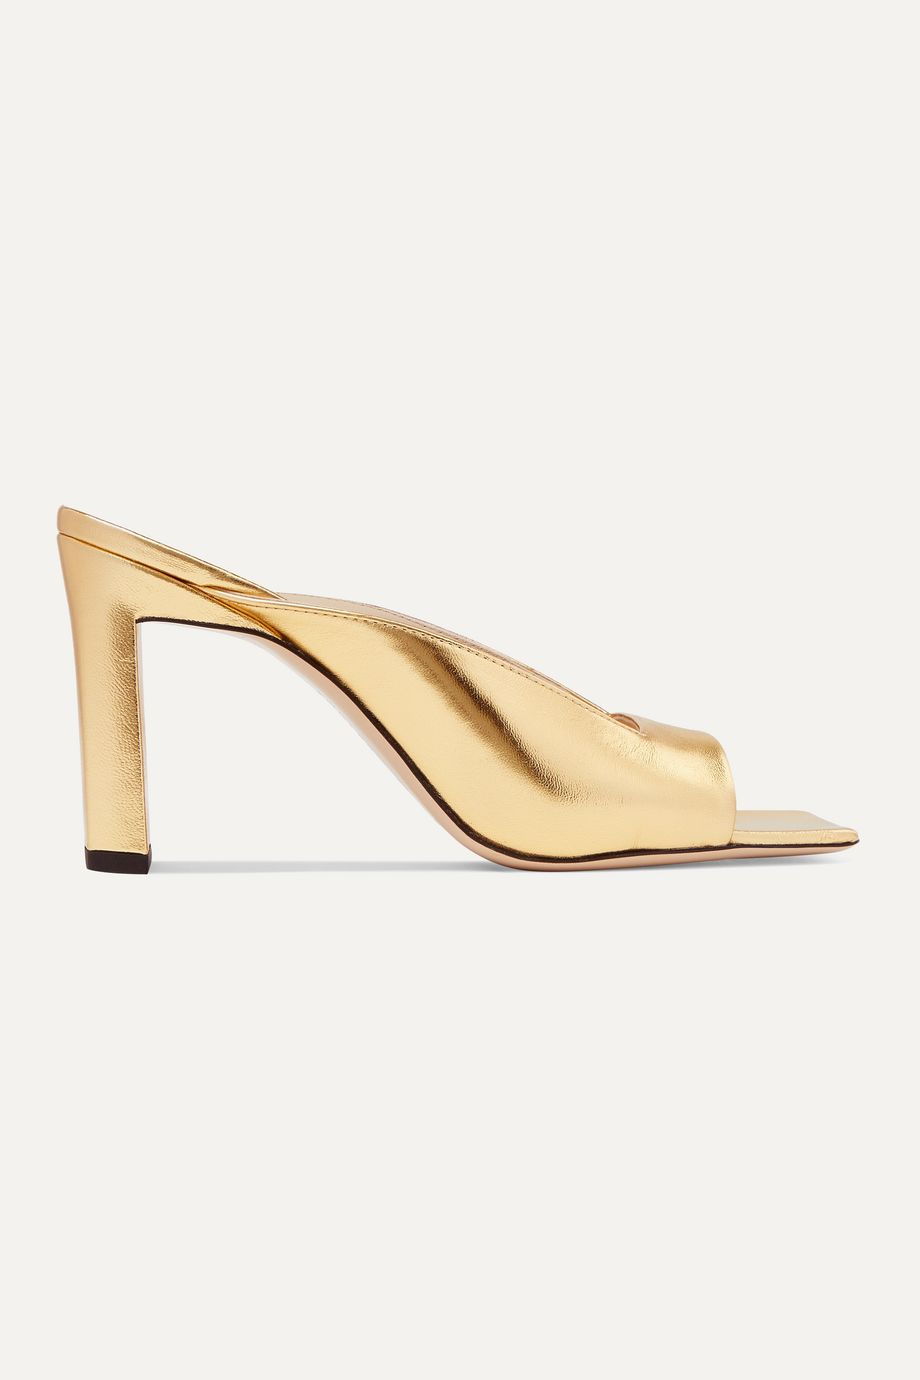 Wandler Isa metallic leather mules